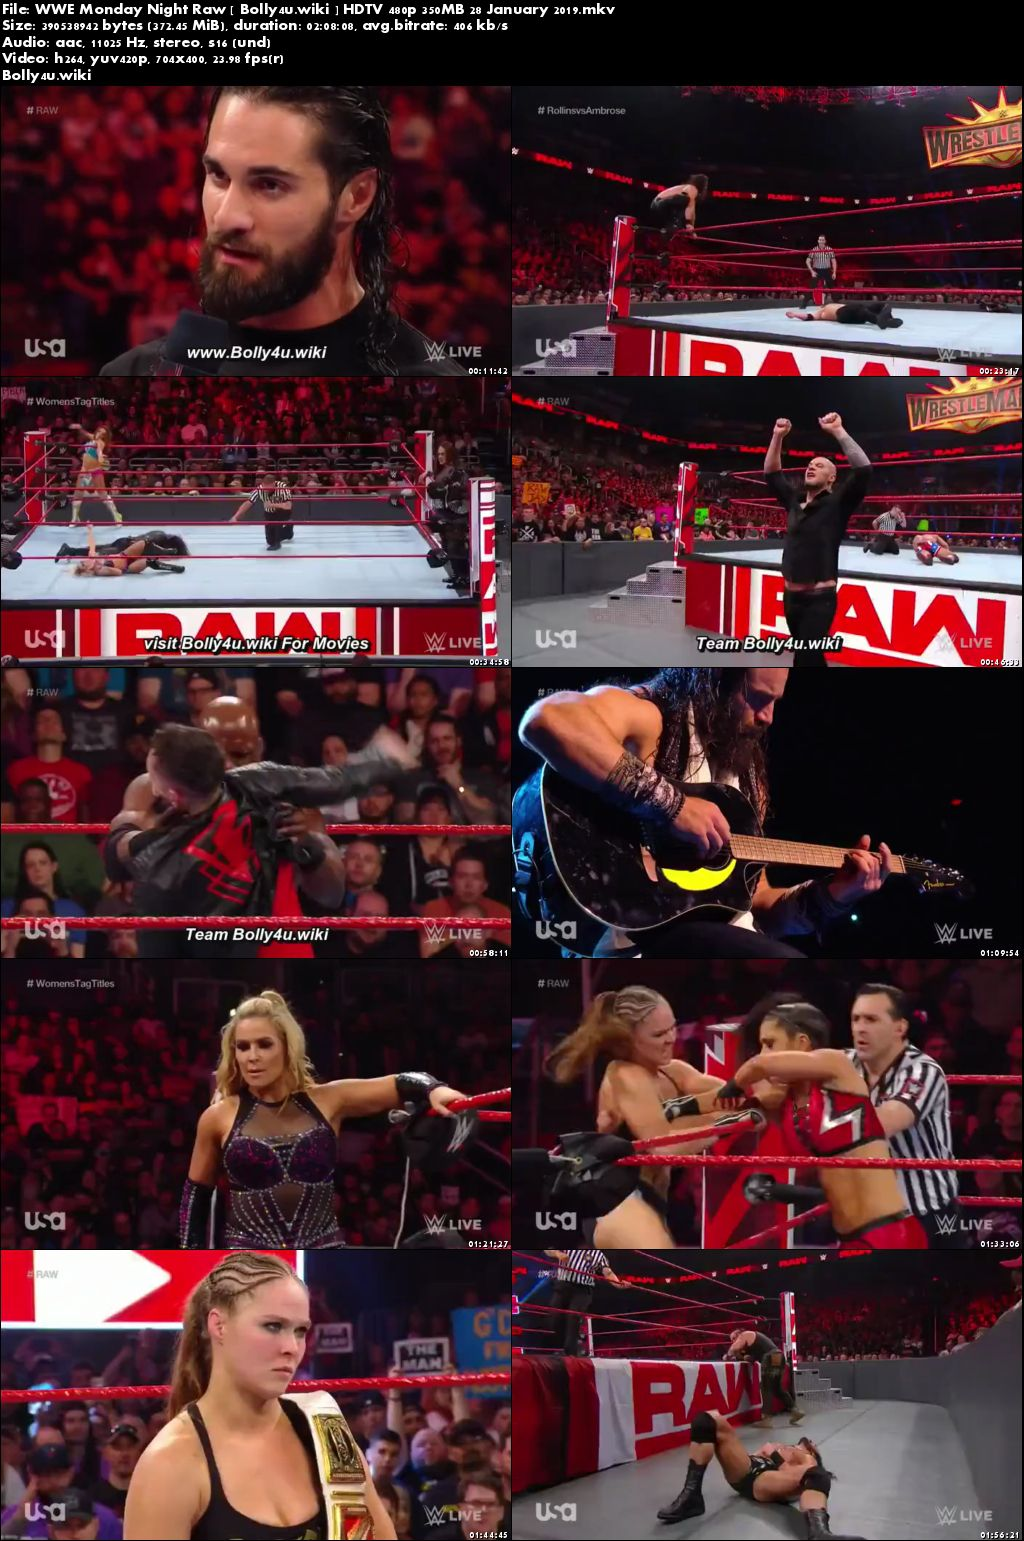 WWE Monday Night Raw HDTV 480p 350MB 28 January 2019 Download